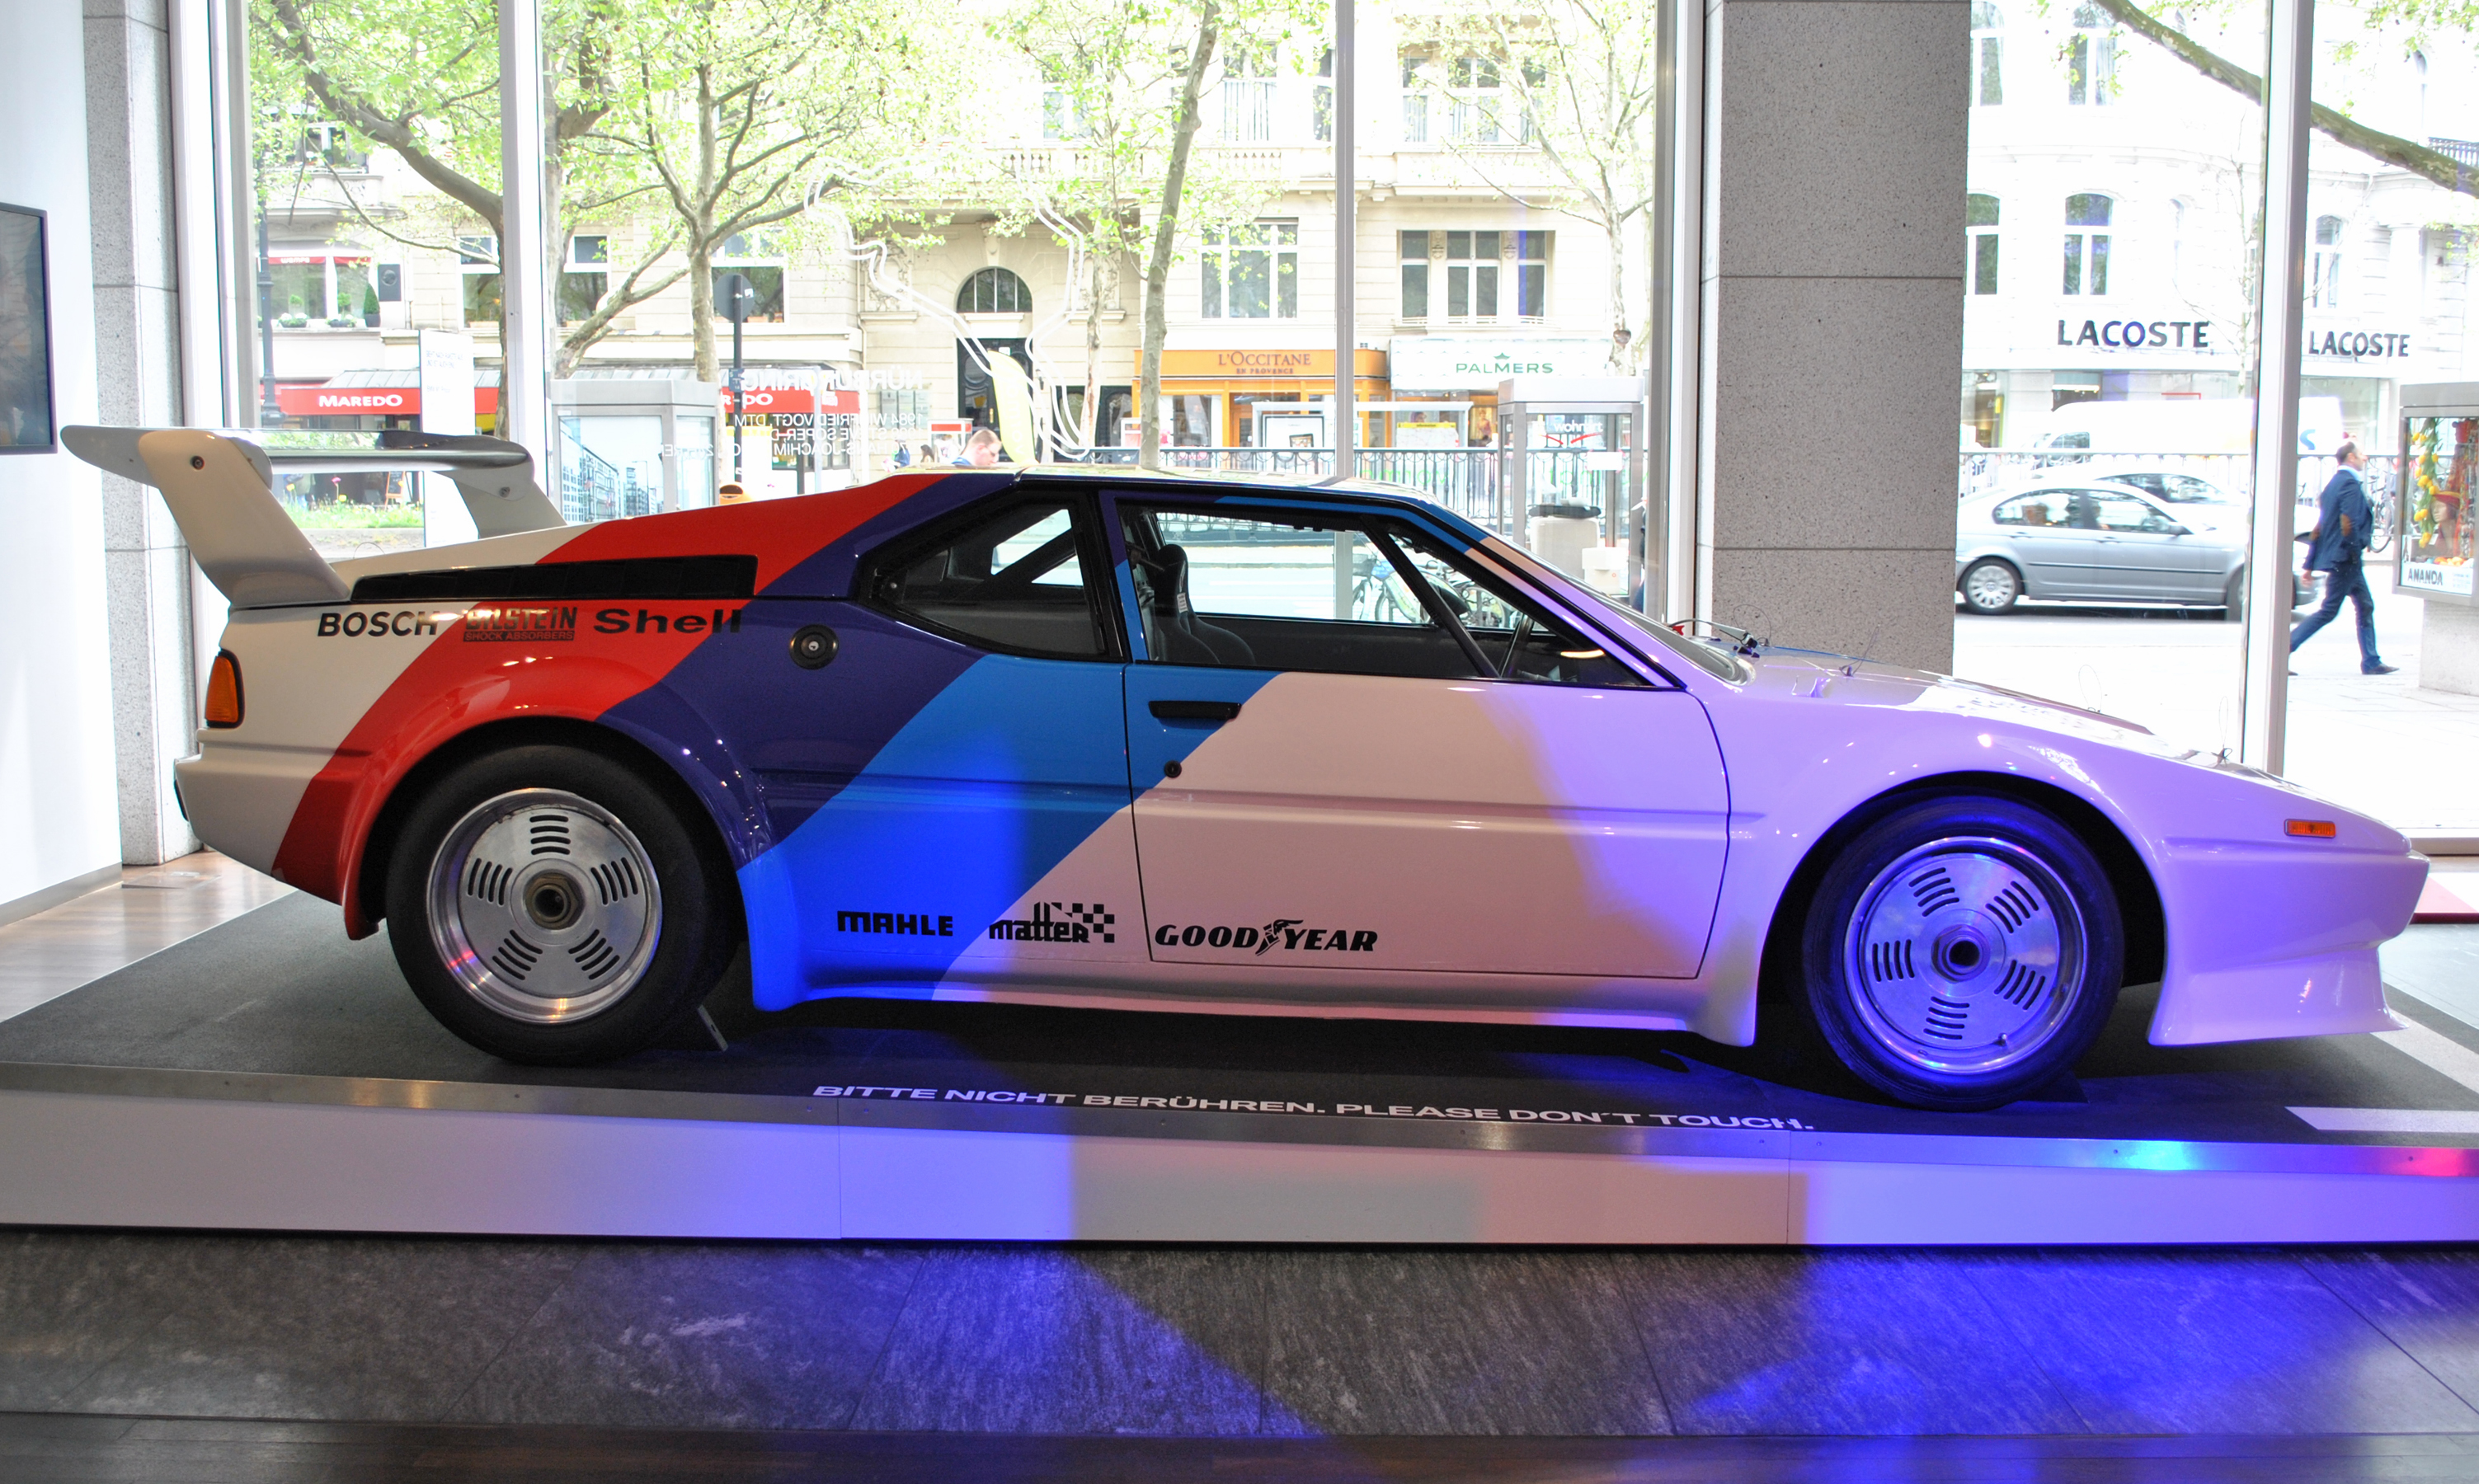 File:BMW-M1-Procar Piquet 3.JPG - Wikimedia Commons